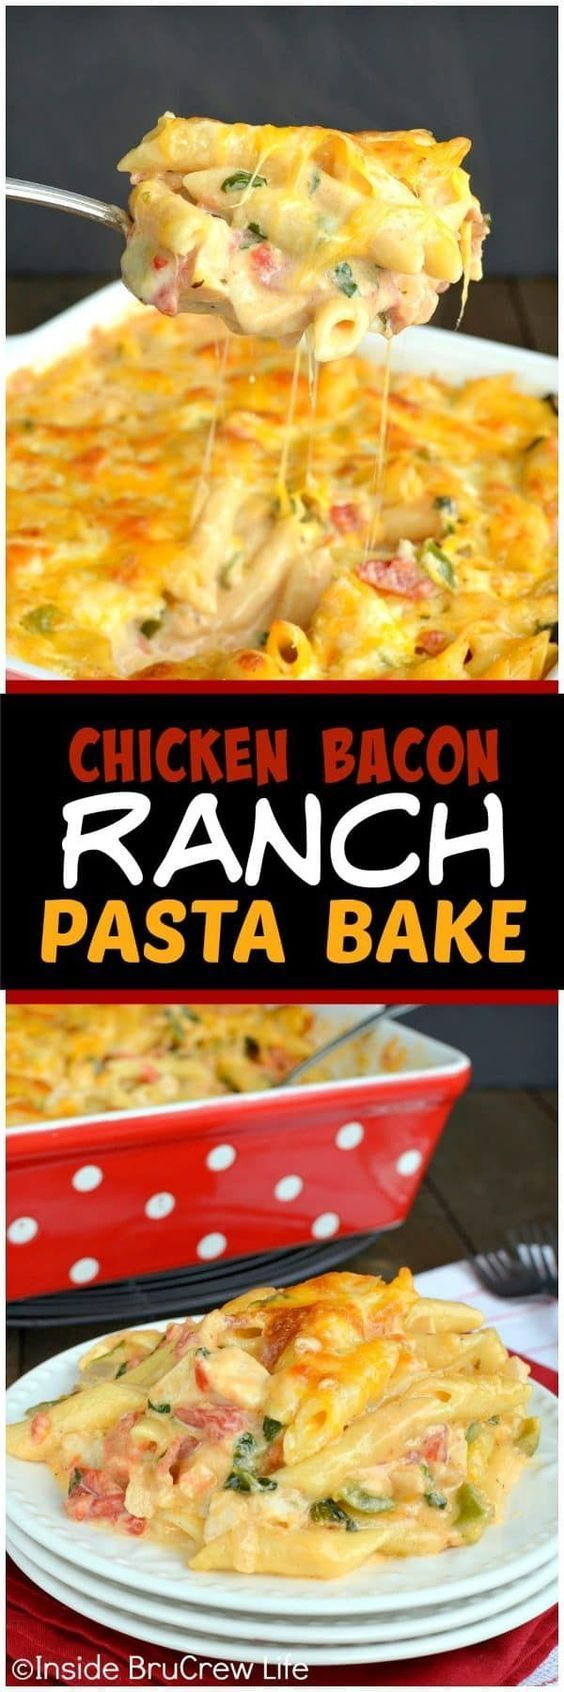 Chicken bacon ranch pasta bake this pasta dish is loaded with meat chicken bacon ranch pasta bake this pasta dish is loaded with meat cheese and veggies and always gets rave reviews easy comfort food recipe to forumfinder Images